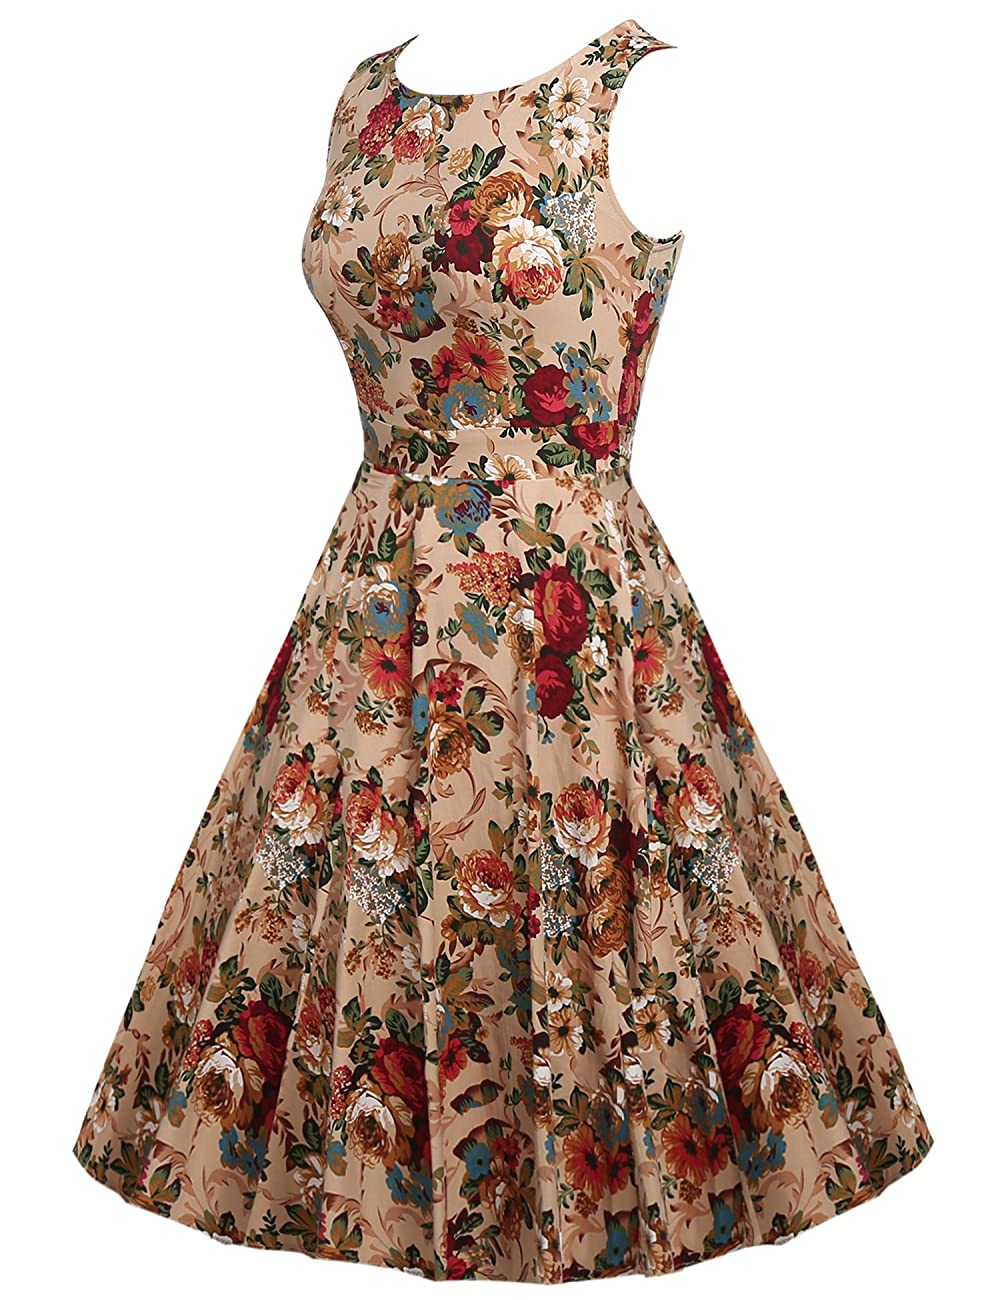 ARANEE Vintage Classy Floral Sleeveless Party Picnic Party Cocktail Dress 1